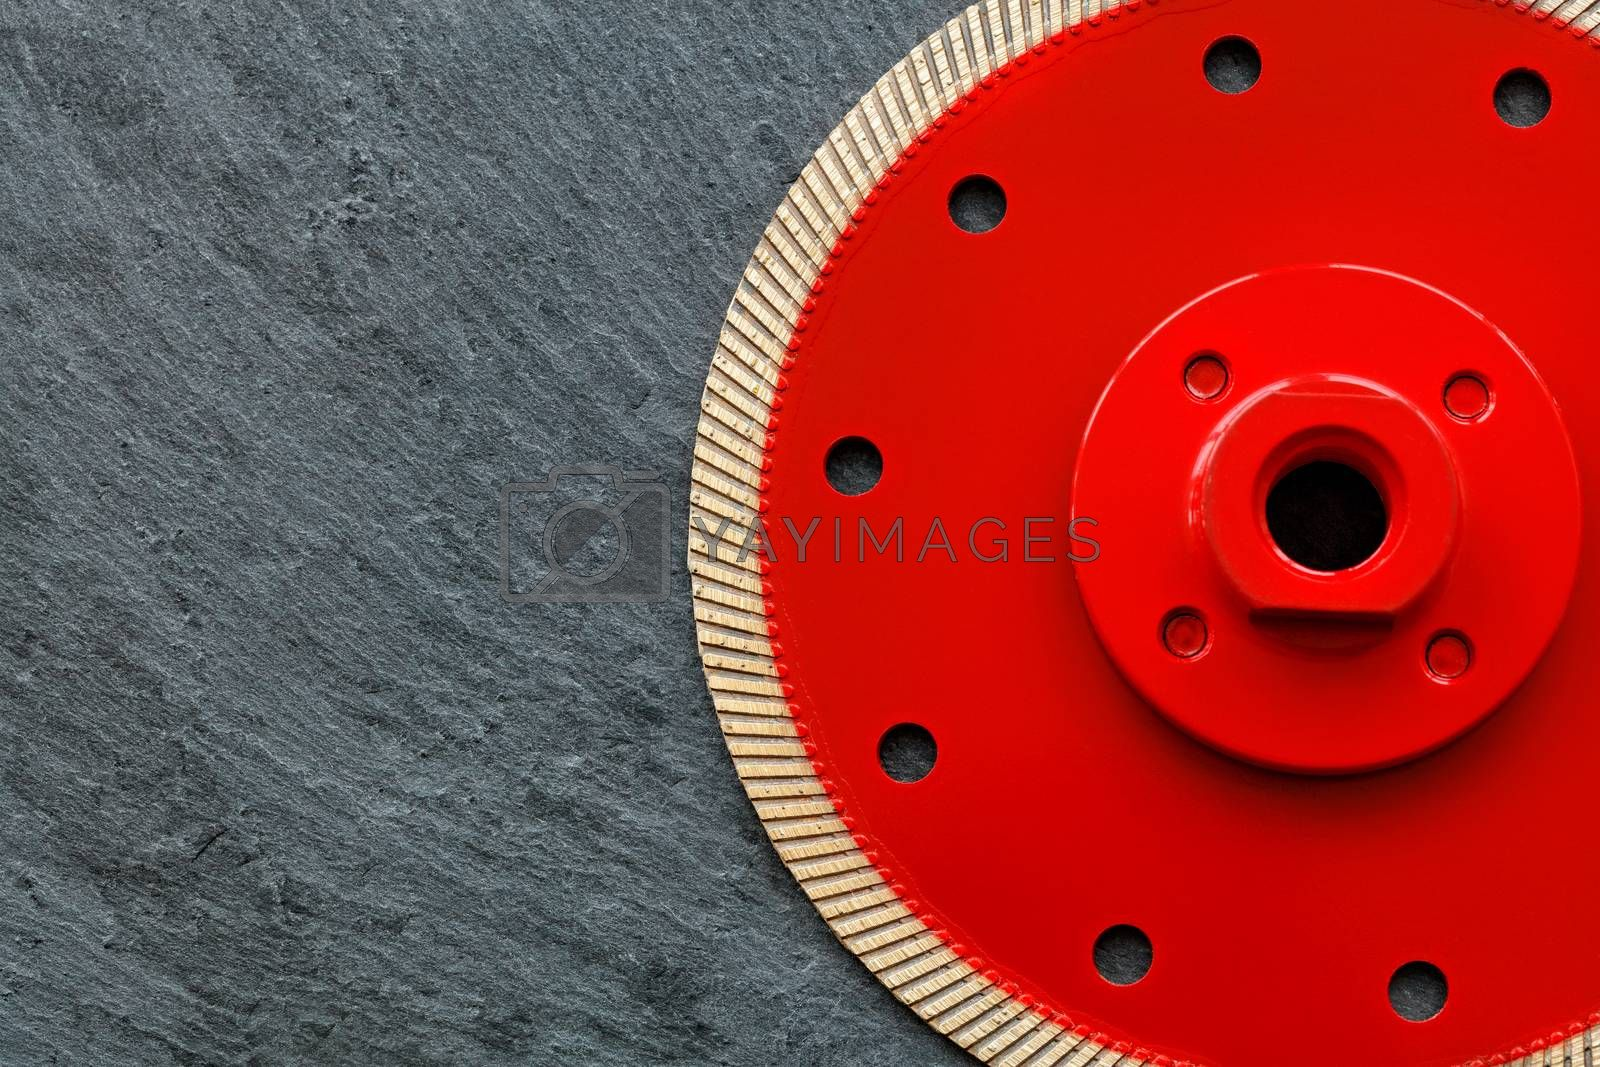 Cutting diamond professional blade of red color, a thin blade with a flange is used for precise cutting of the material against the background of gray granite, image with copy space.